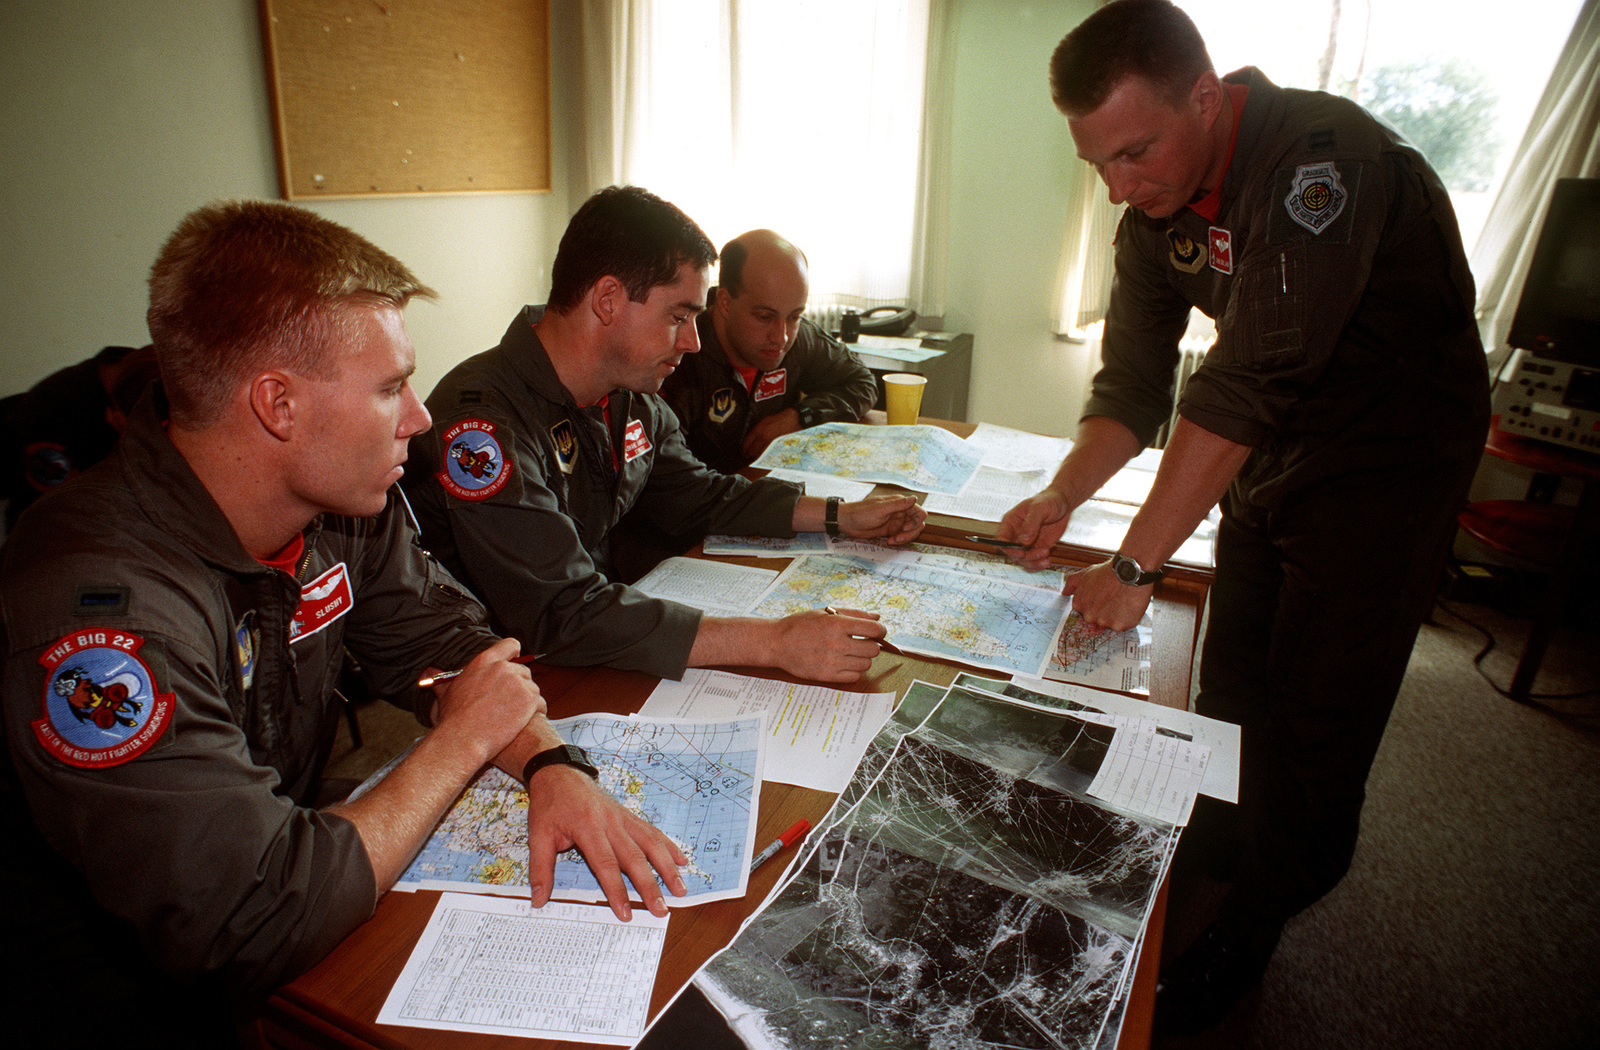 Pilots from the 22nd Fighter Squadron, Spangdahlem AB, Germany conduct a pre-flight briefing before flying a simulated bombing mission over a Danish bombing range. This three week exercise is designed to test the effectiveness of both the American and Danish air defenses. Exact Date Shot Unknown